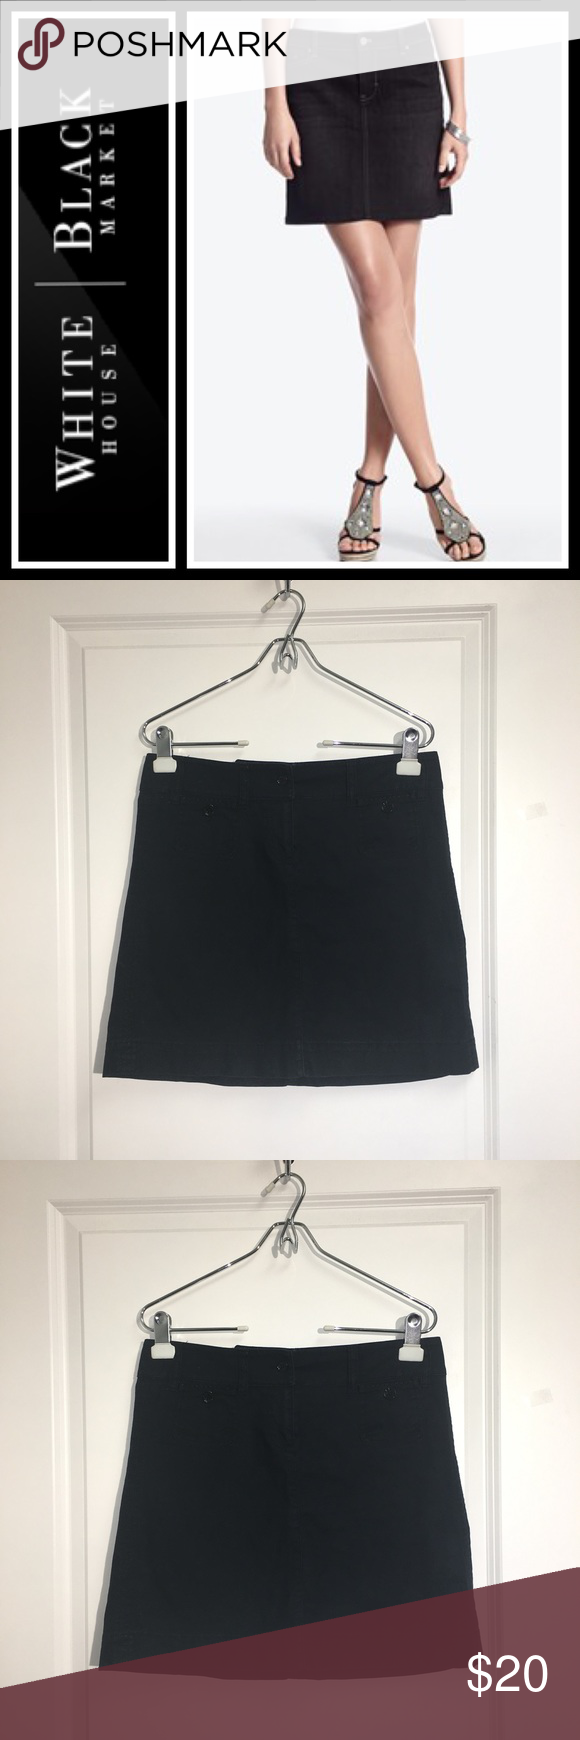 """WHBM black denim skirt Perfect condition, maybe worn twice - size 2 - length from top to bottom is 17"""" - cotton/ spandex Blend a little but not much stretch to it! Size 2 White House Black Market Skirts"""